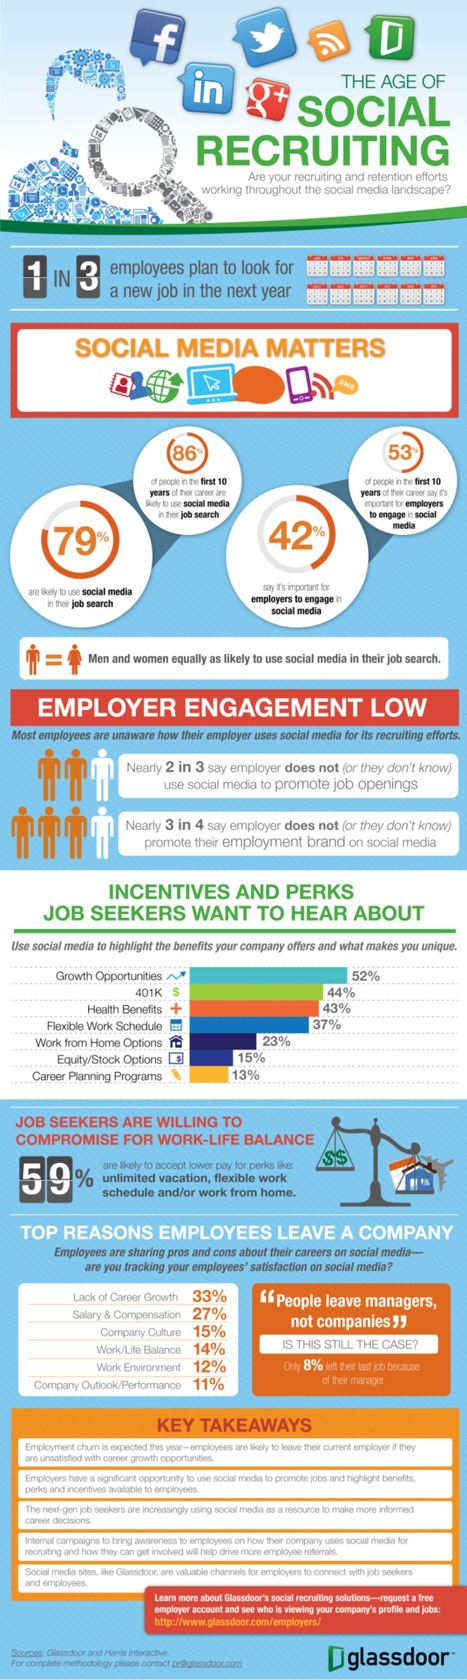 INFOGRAPHIC: The Age of Social Recruiting | Recruitment | Scoop.it